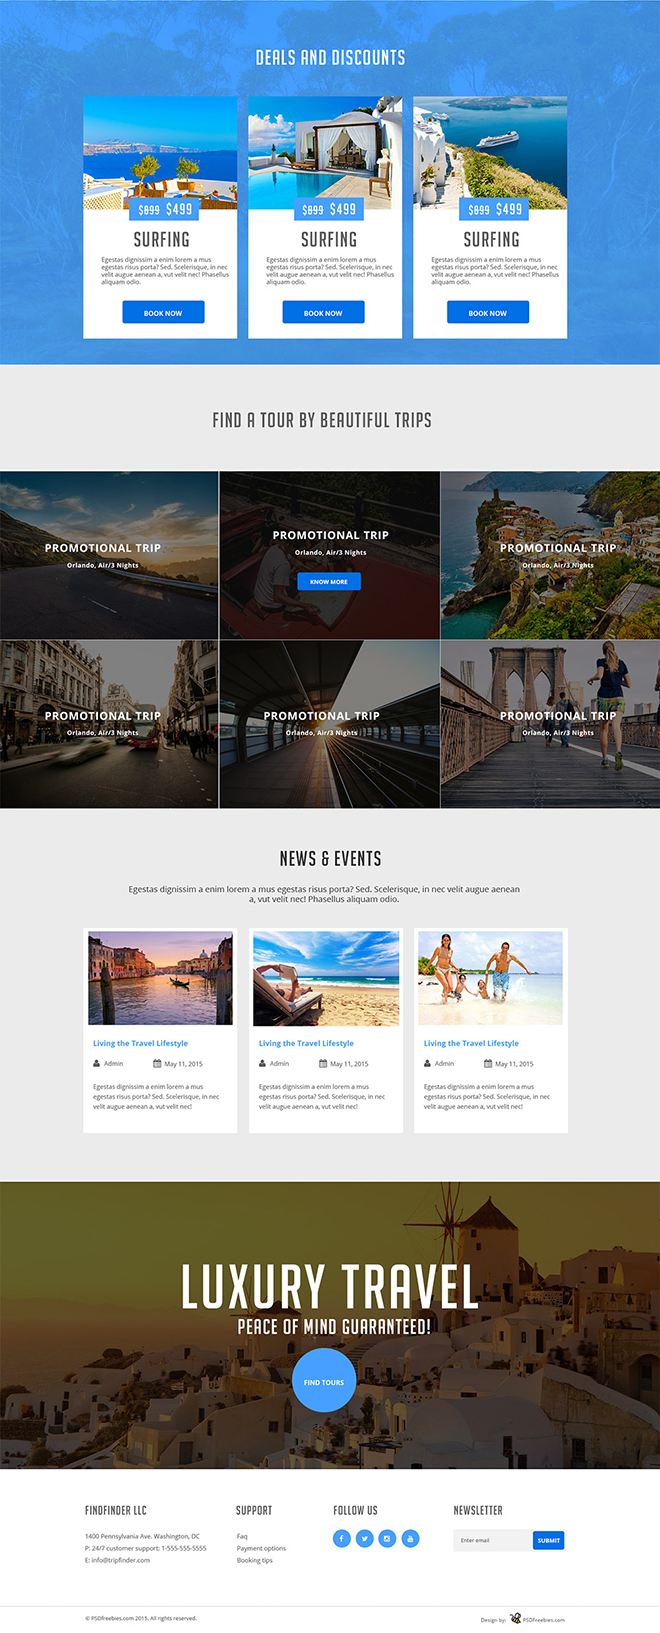 Tour-&-Travel-Guide-PSD-Template-1